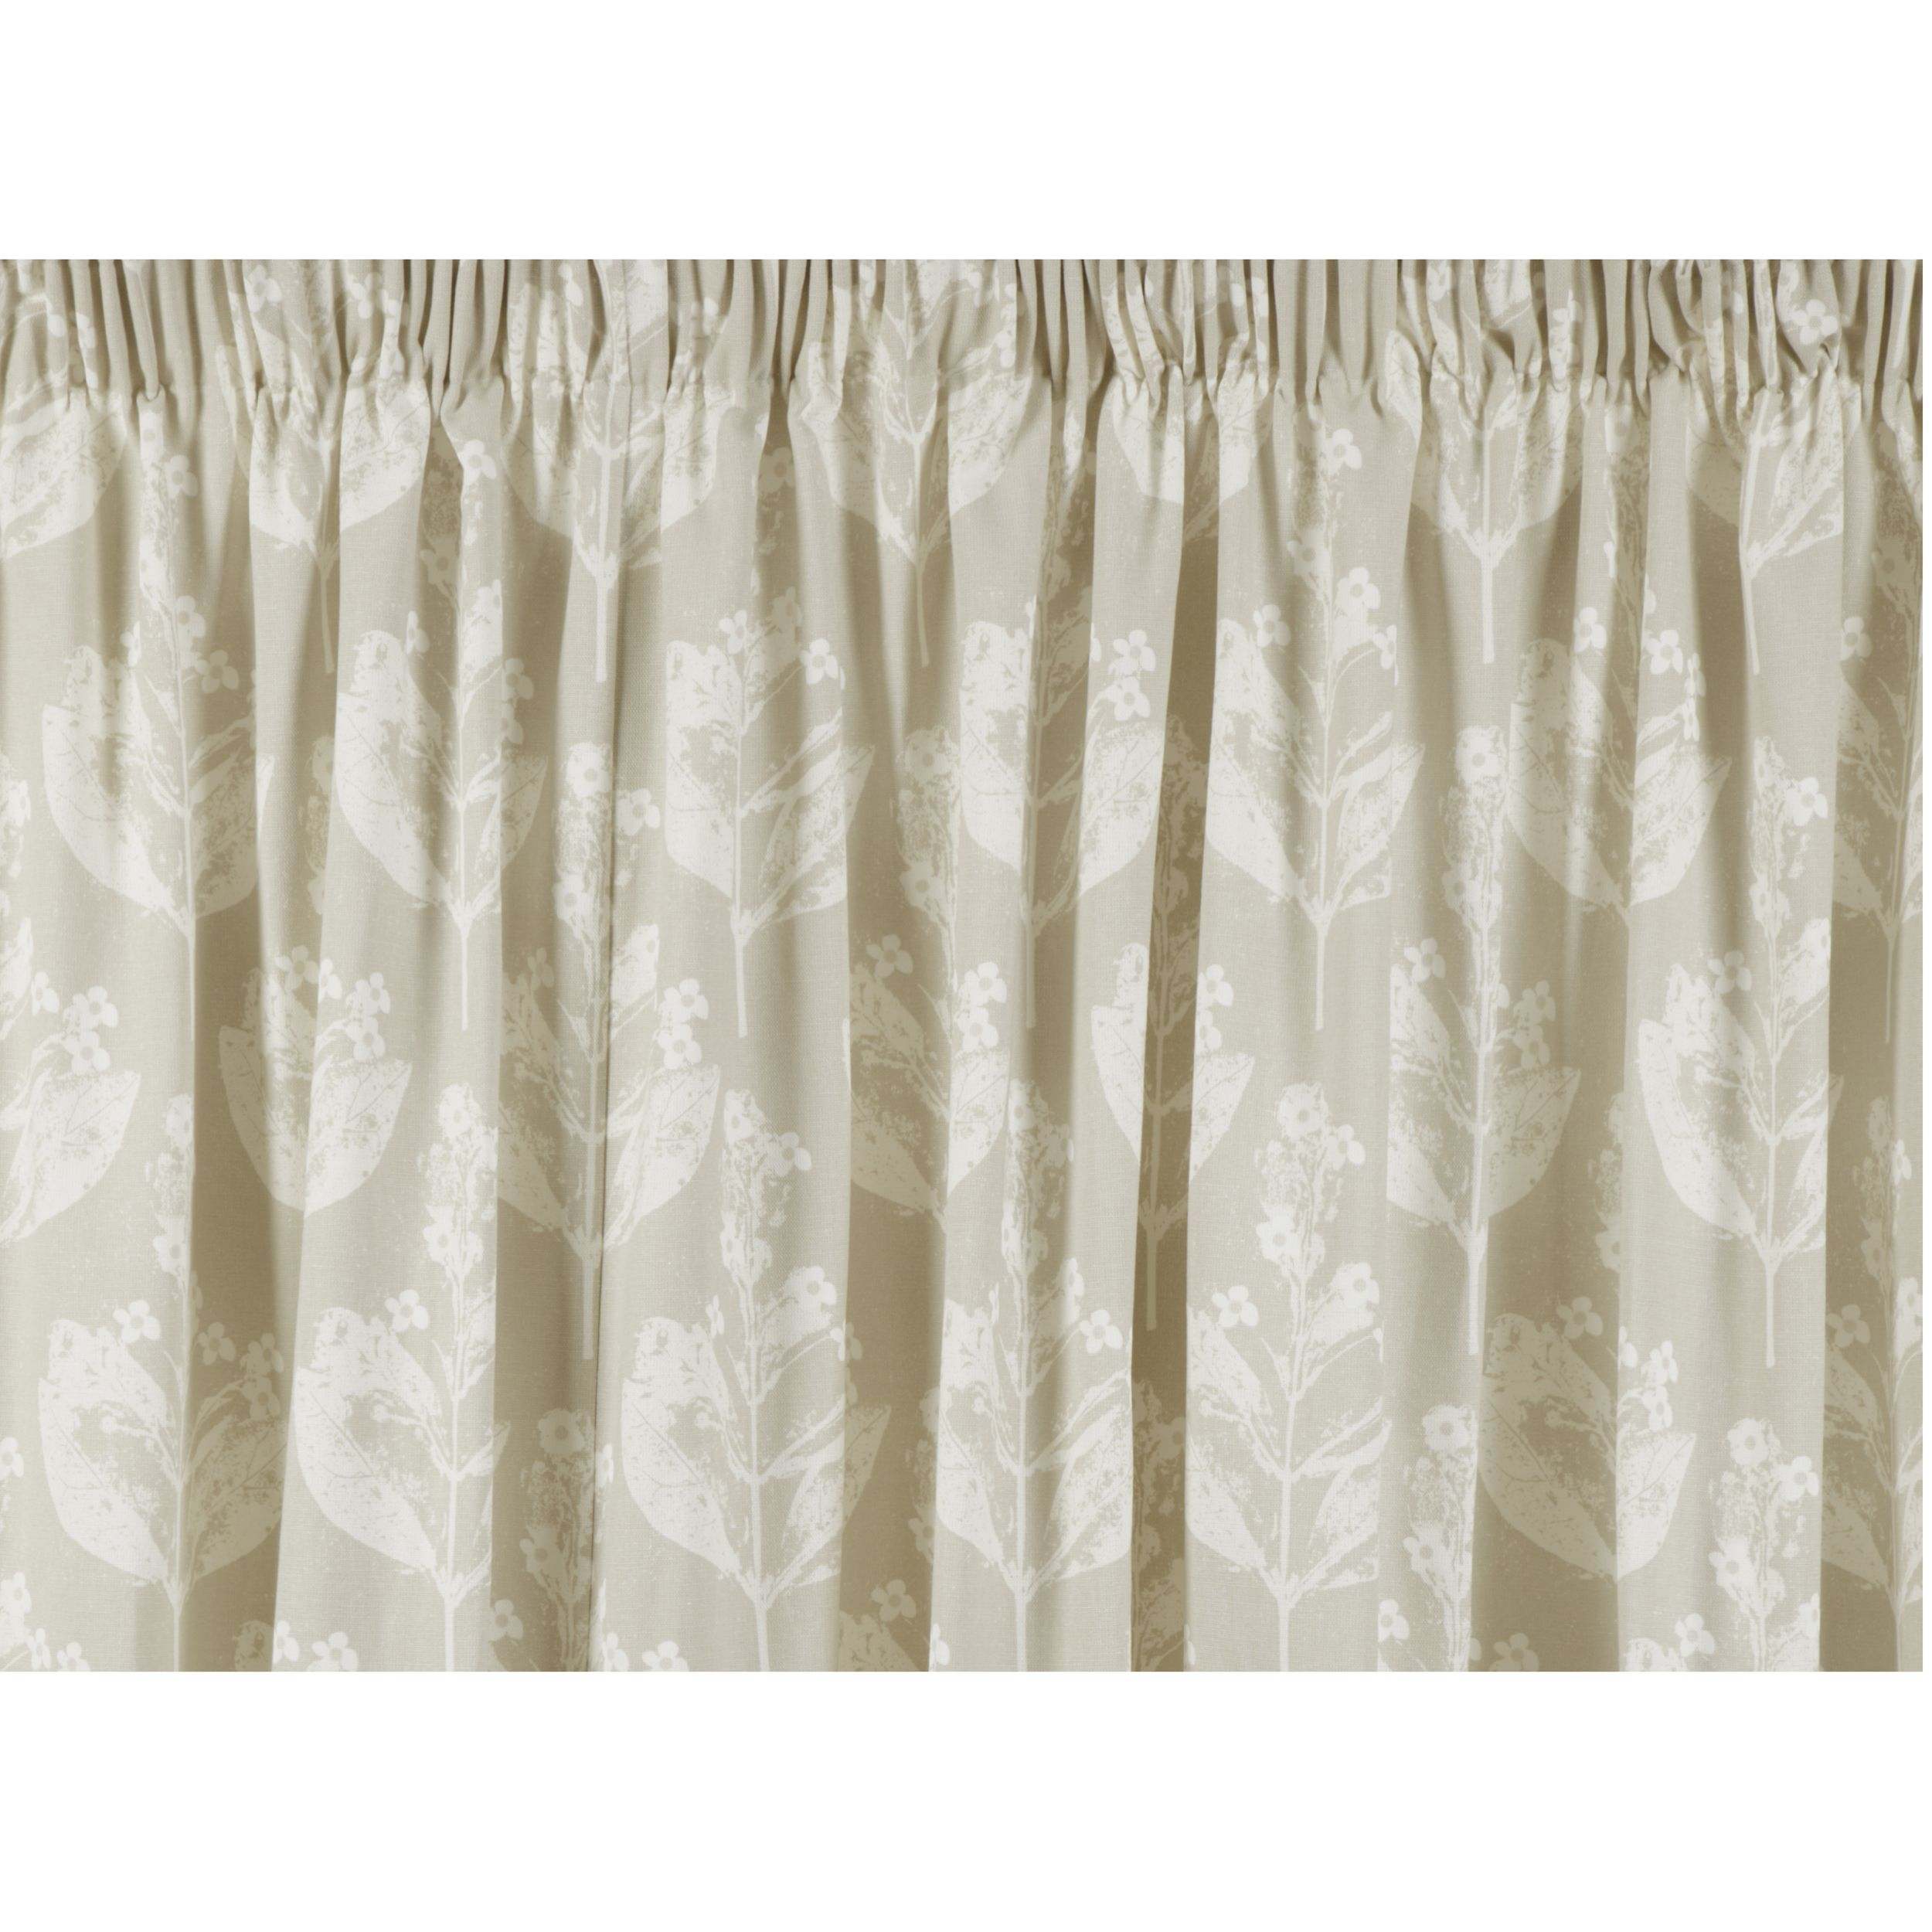 Attractive Chiltern Natural Cotton Ready Made Curtains Save Up To Off On Curtains U0026  Blinds At Laura Ashley Using Coupon And Promo Codes.